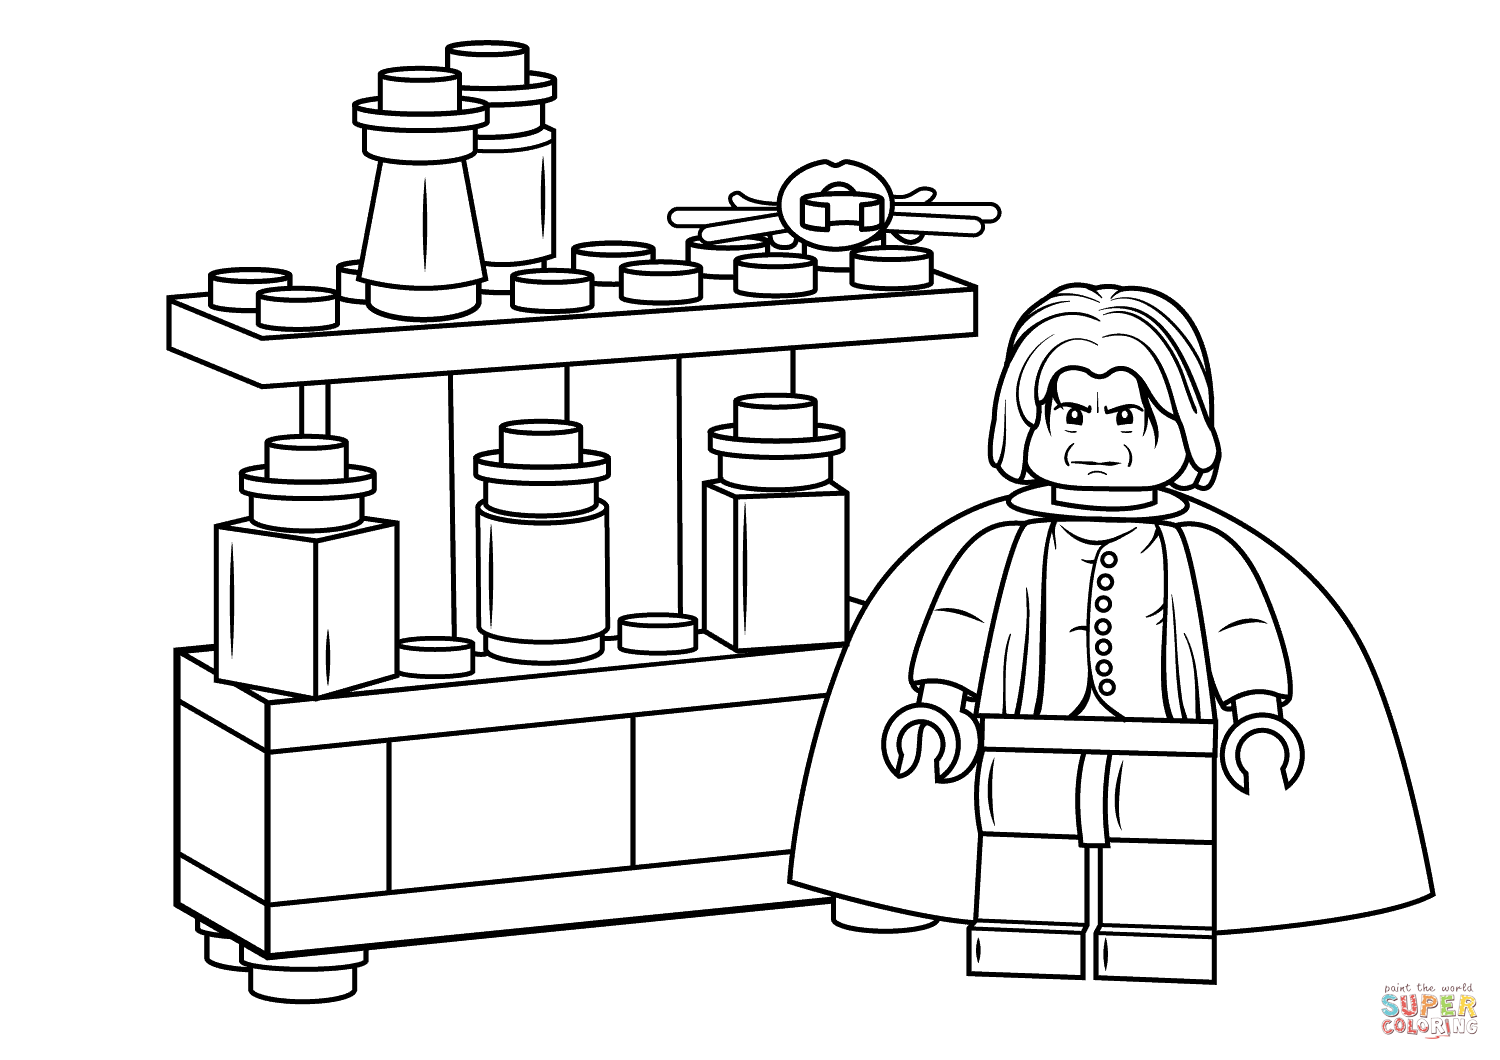 Lego Severus Snape Coloring Page